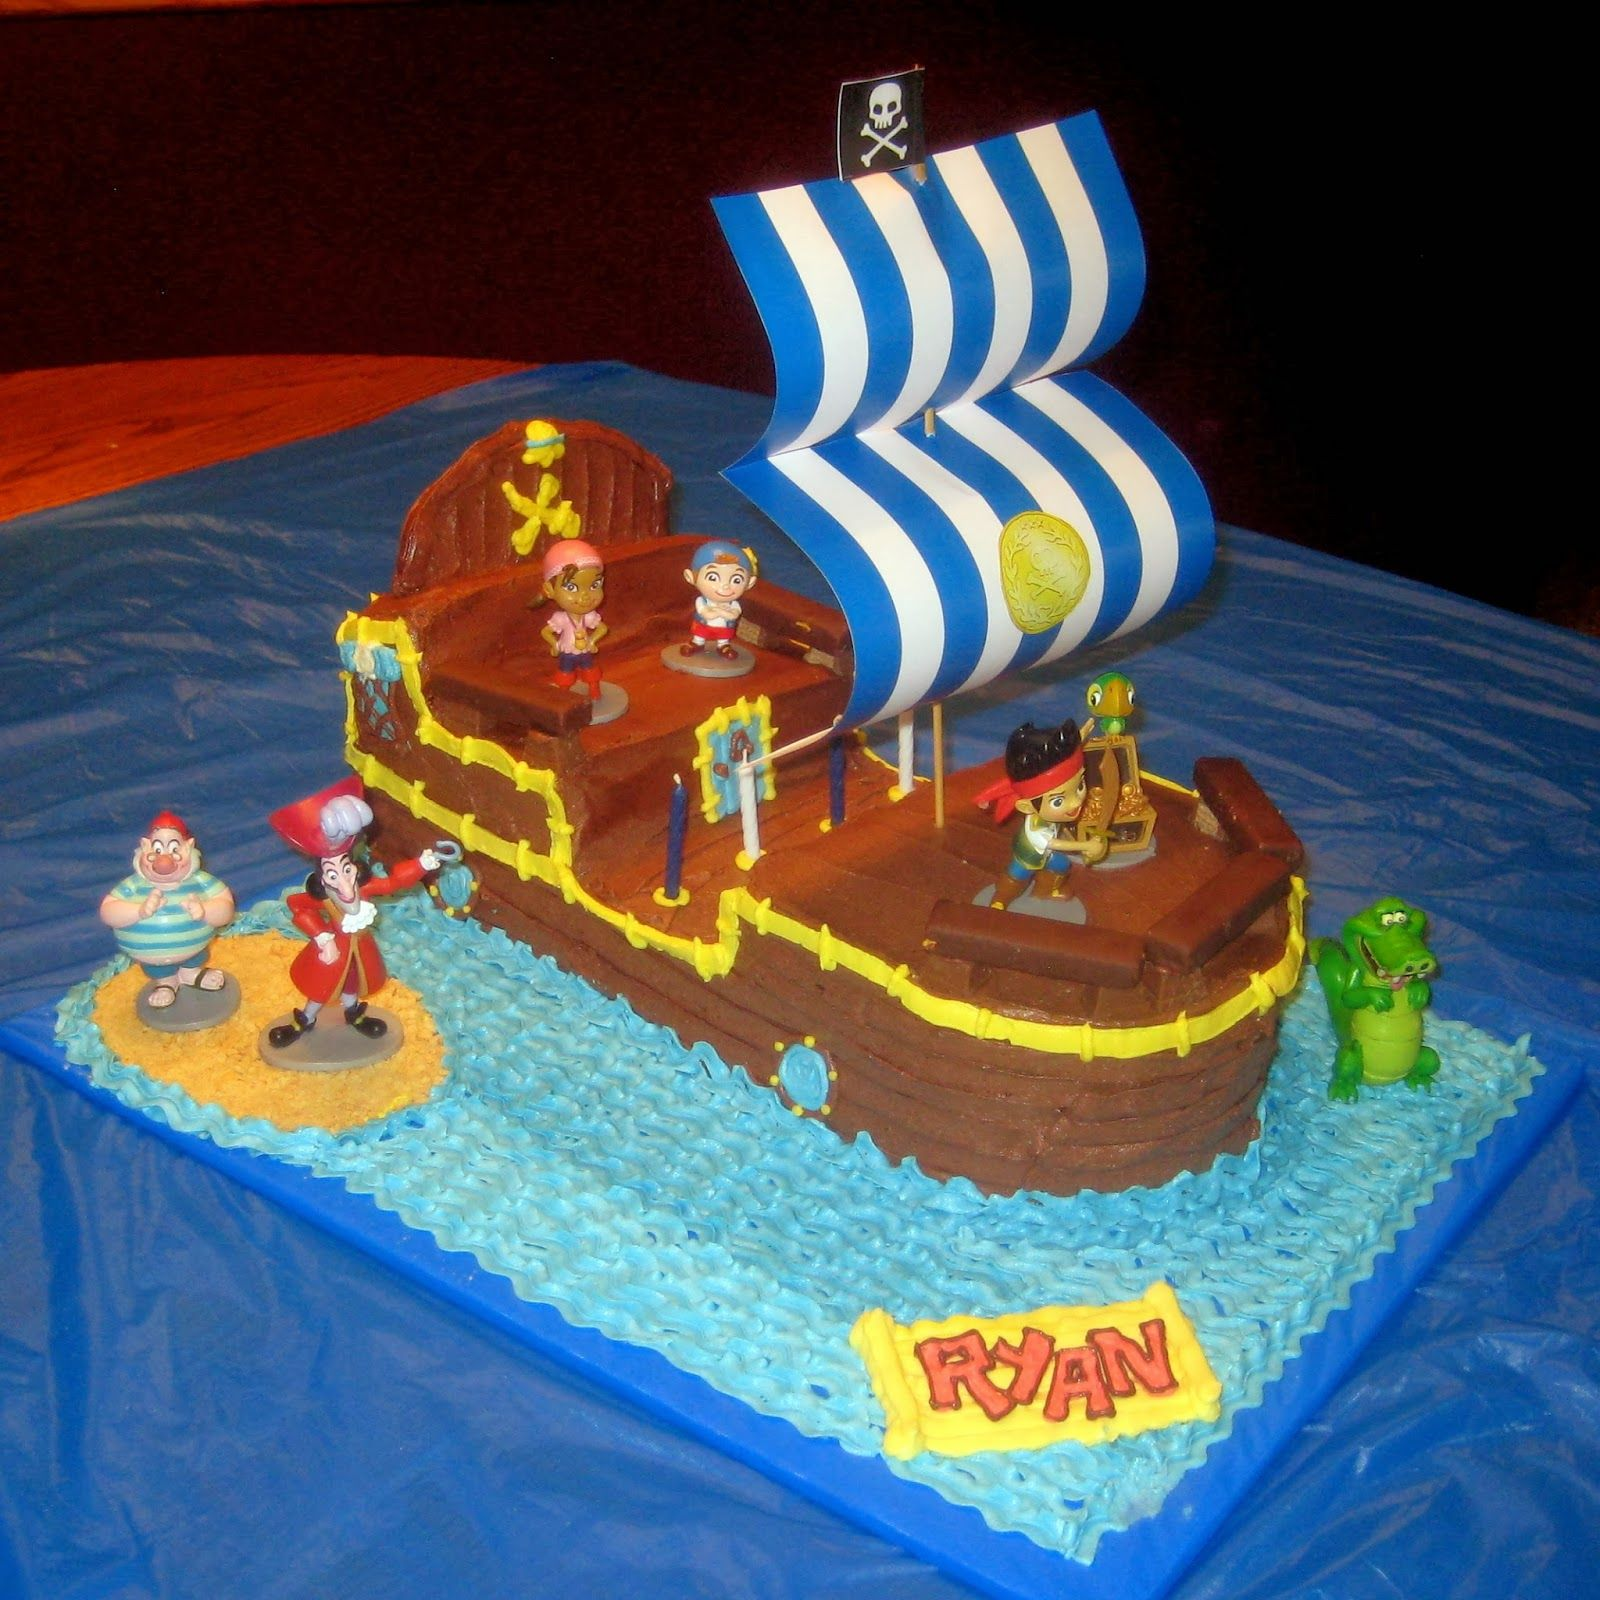 Cake Designs Pirate Ship : jake and the never land pirates cakespirate ship cakes ...